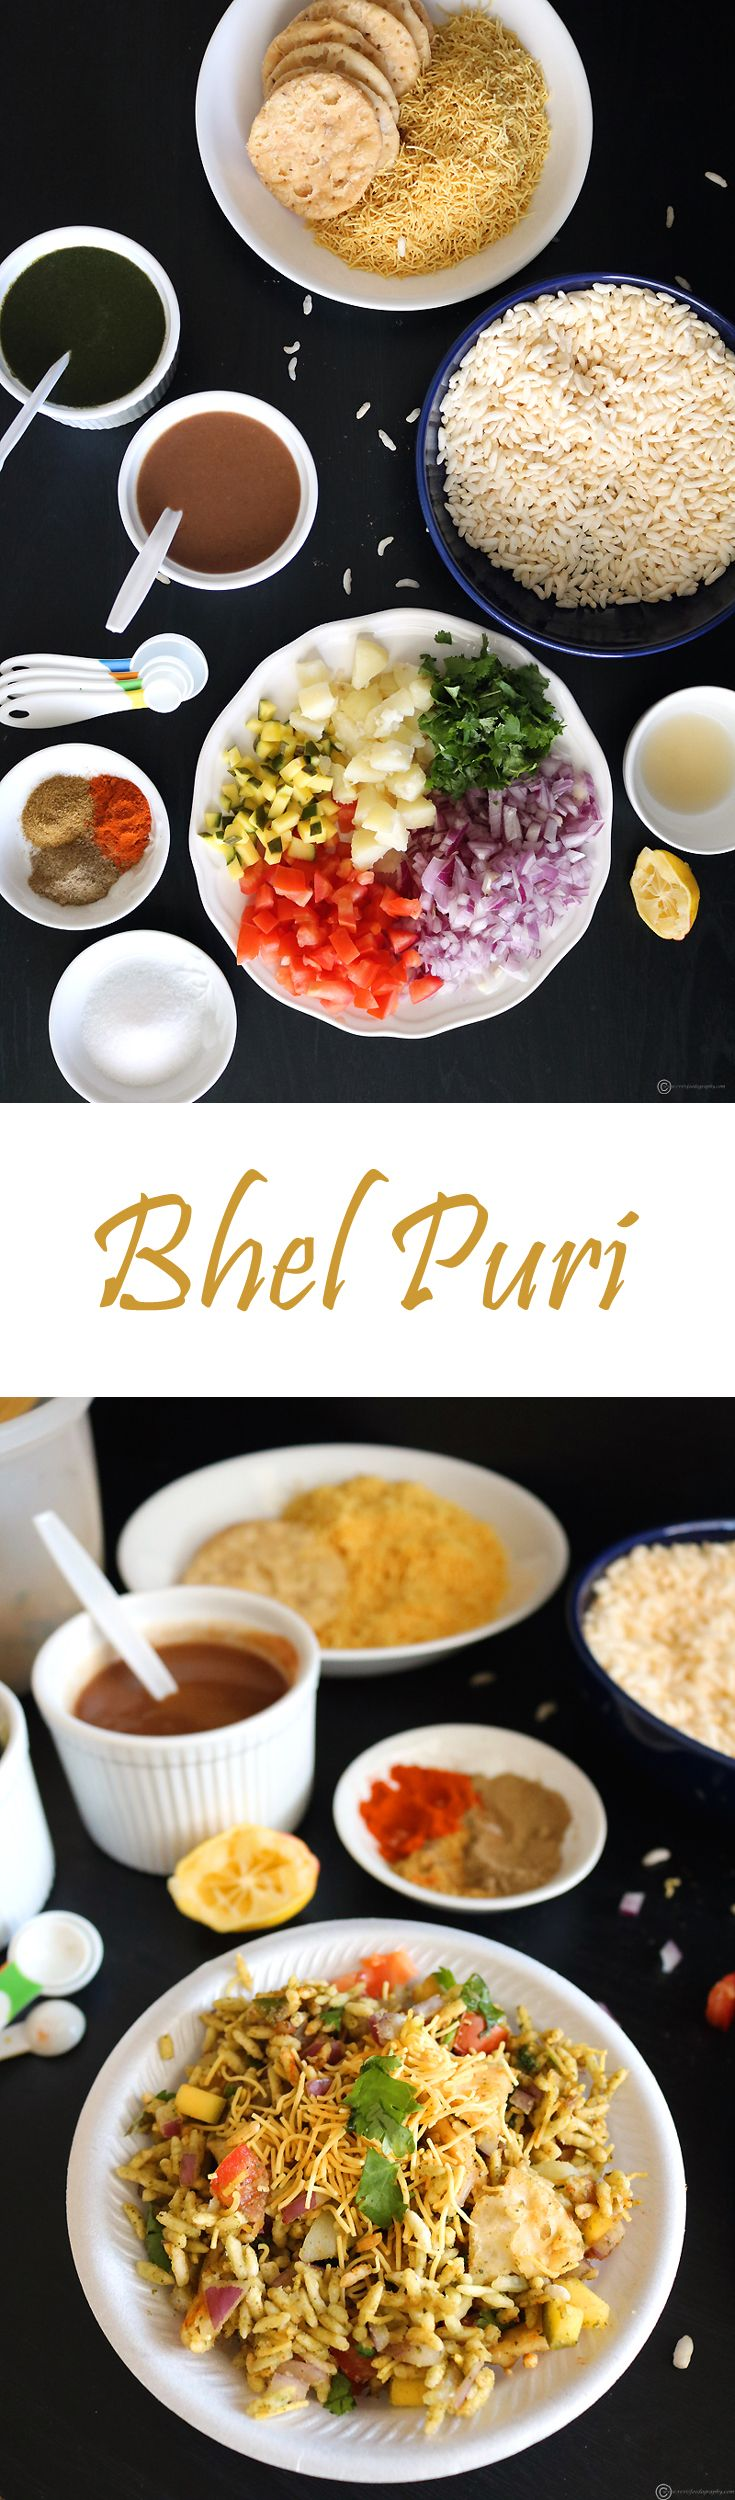 how to cook bhel puri in home